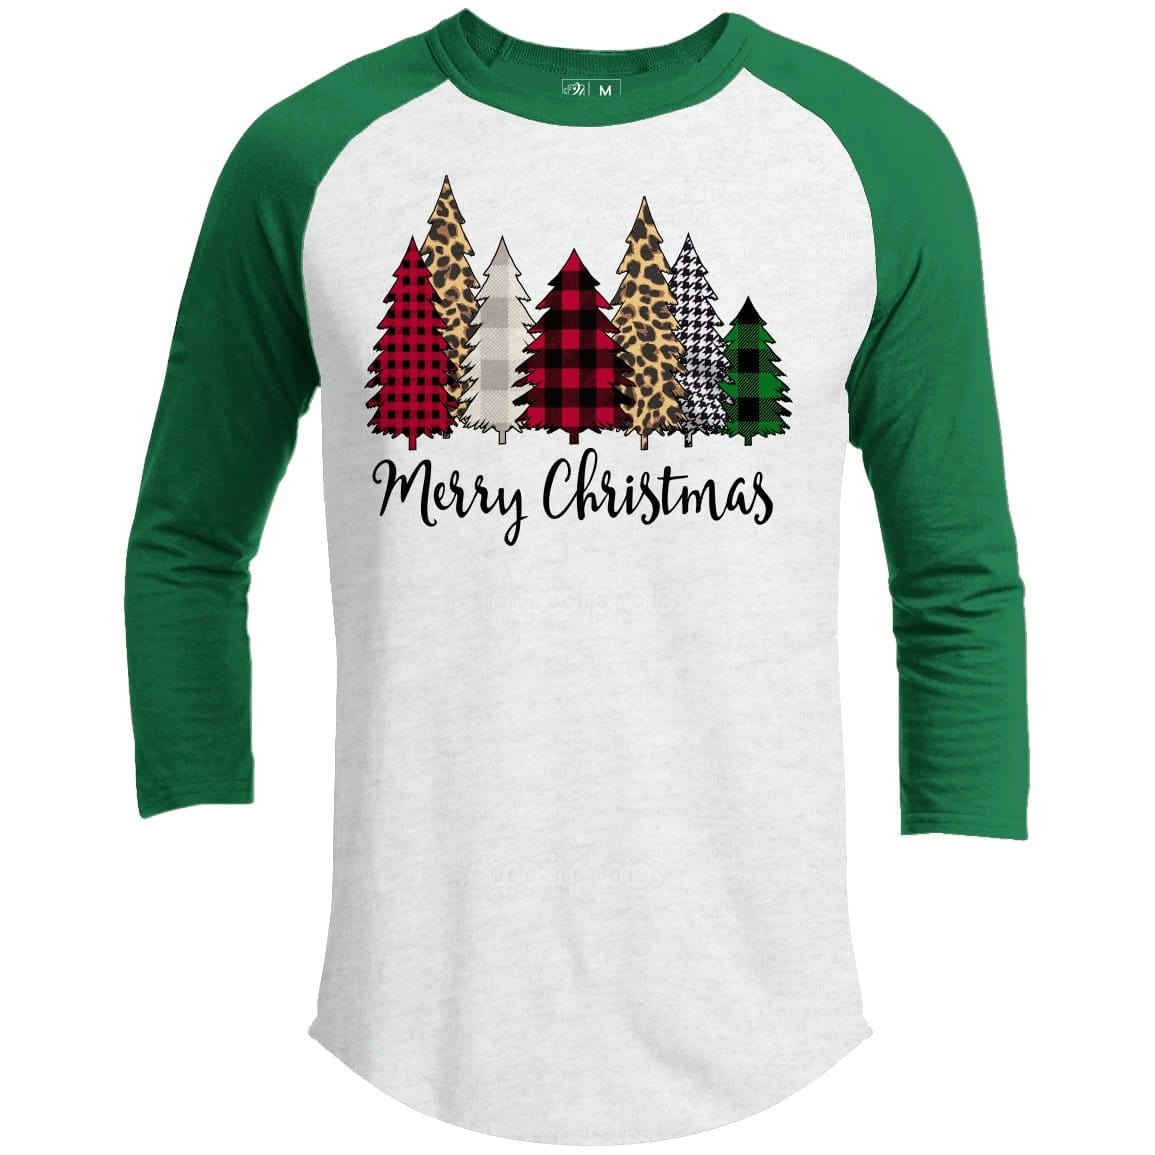 Merry Christmas Trees Premium Youth Christmas Raglan